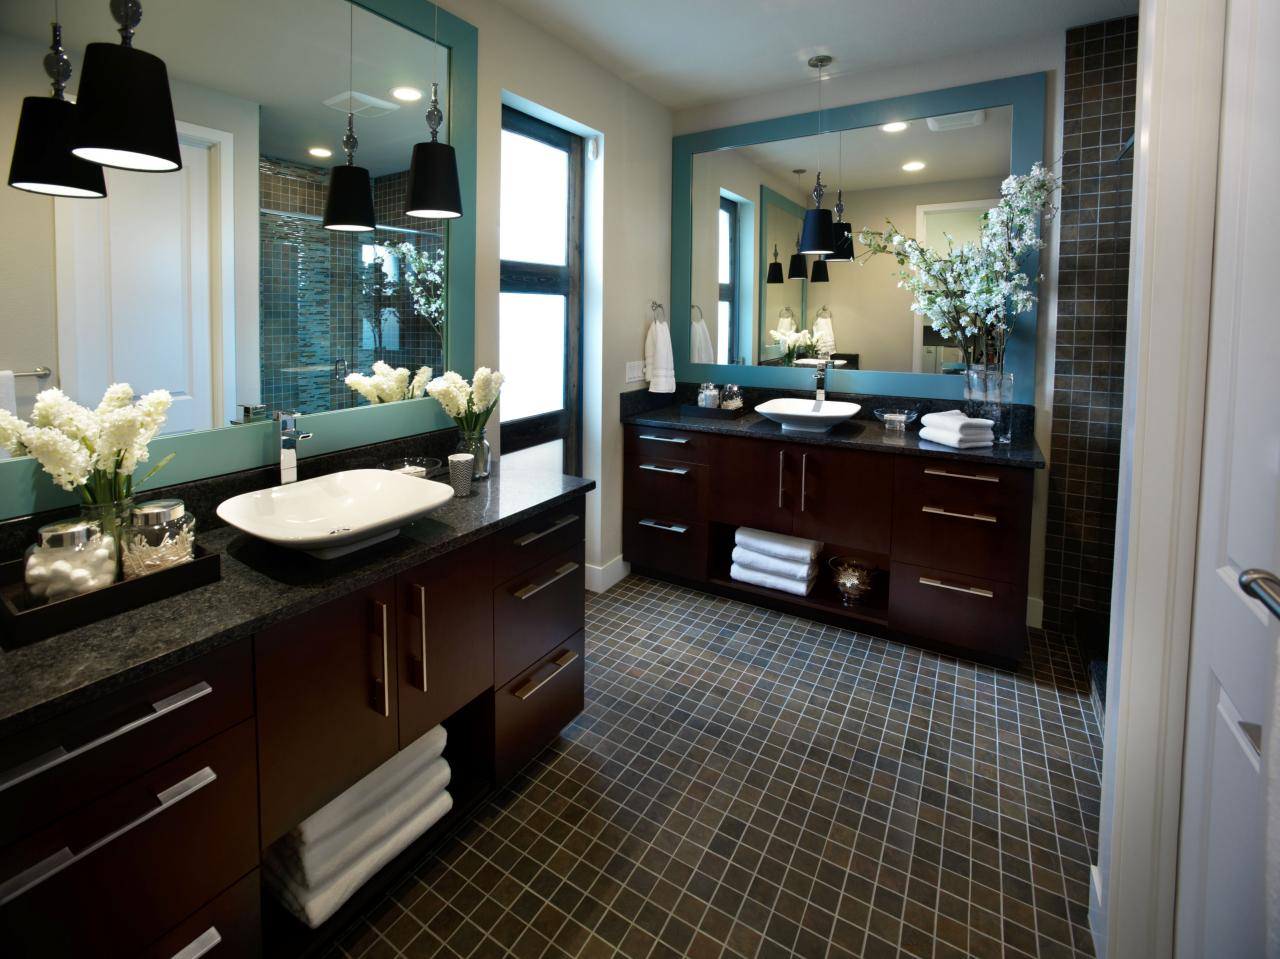 Hgtv green home 2011 master bathroom pictures hgtv Master bathroom designs